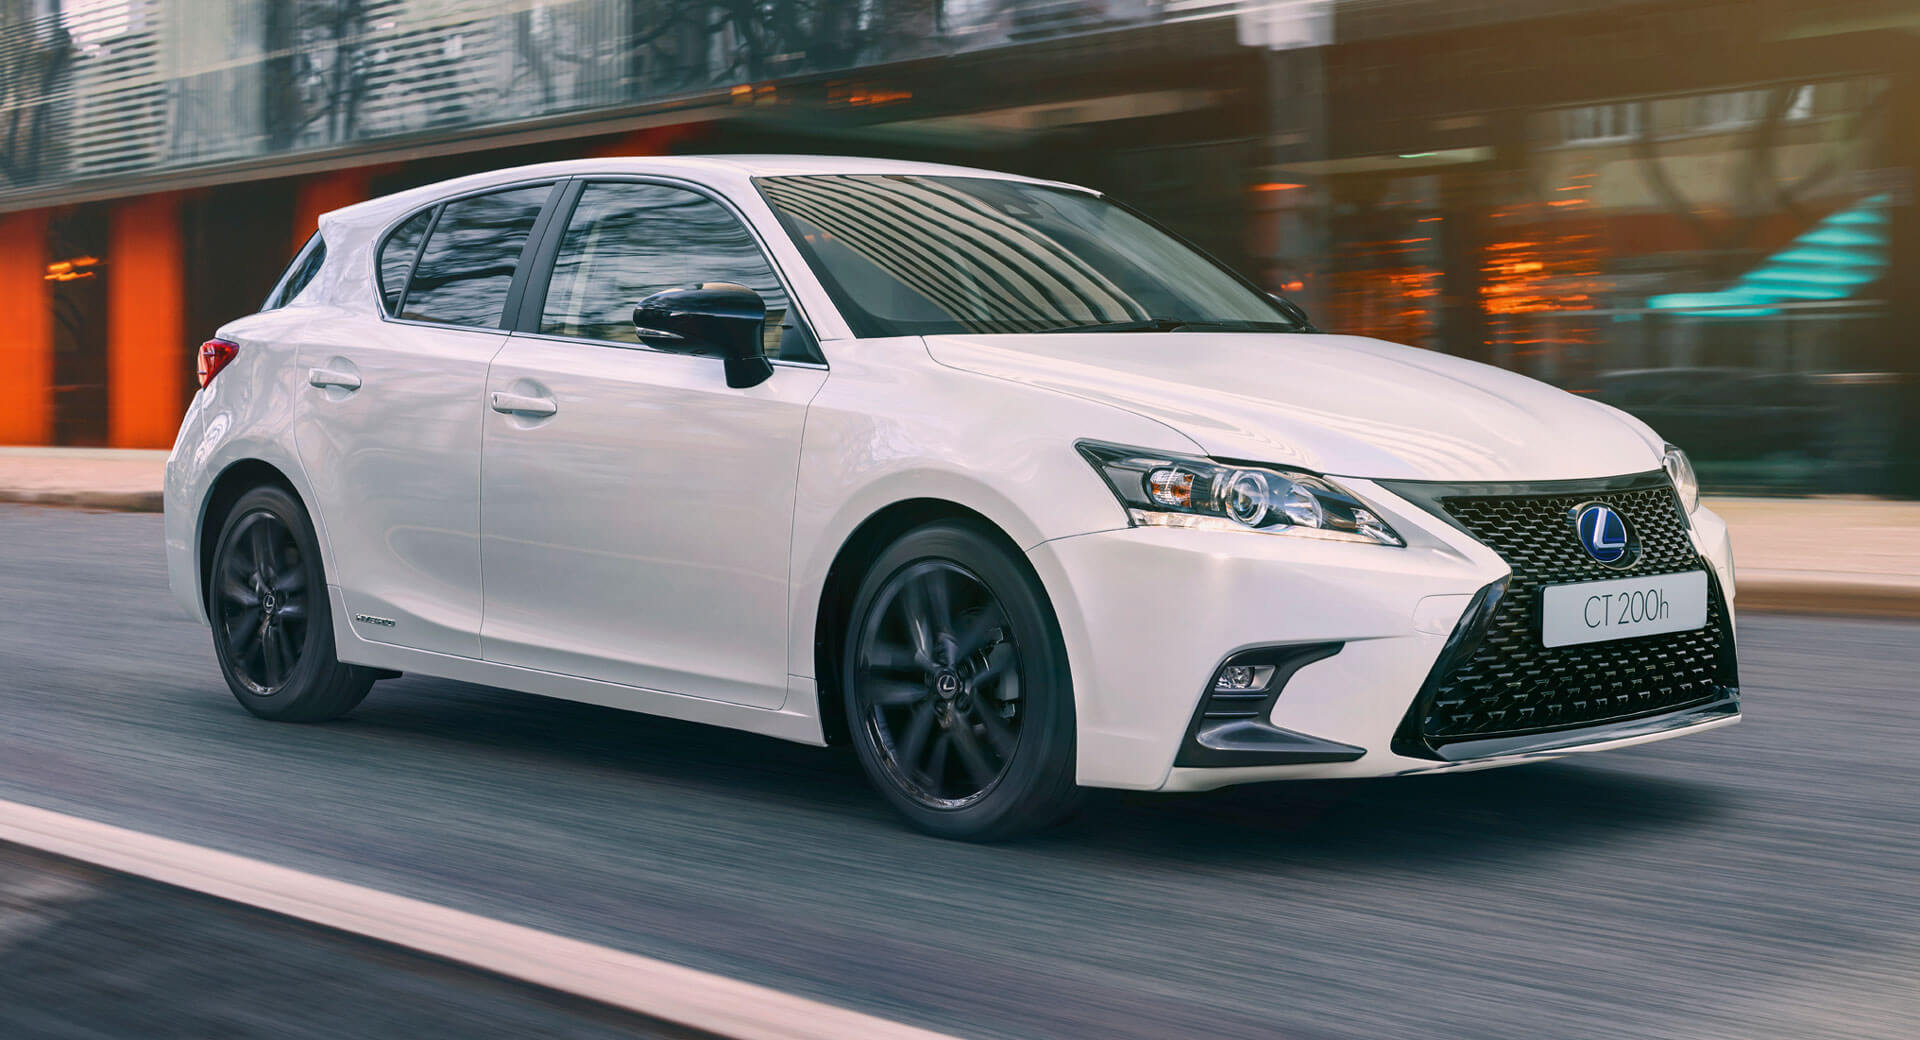 2019 Lexus Ct 200h Arrives With New Grades And